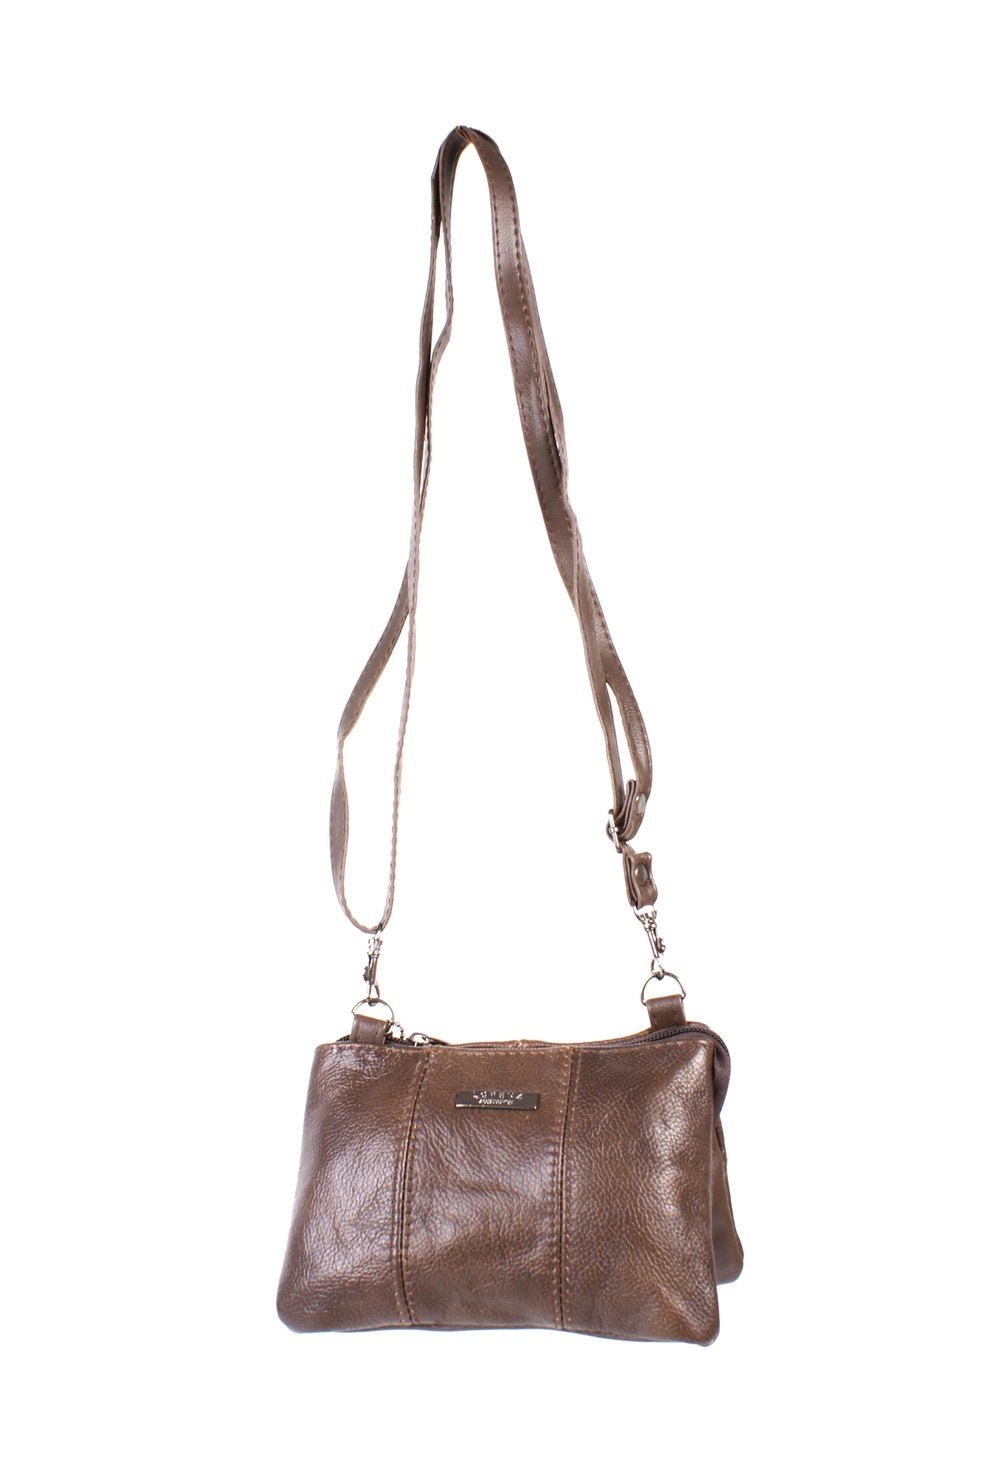 3762 BROWN COW HIDE ZIP BAG